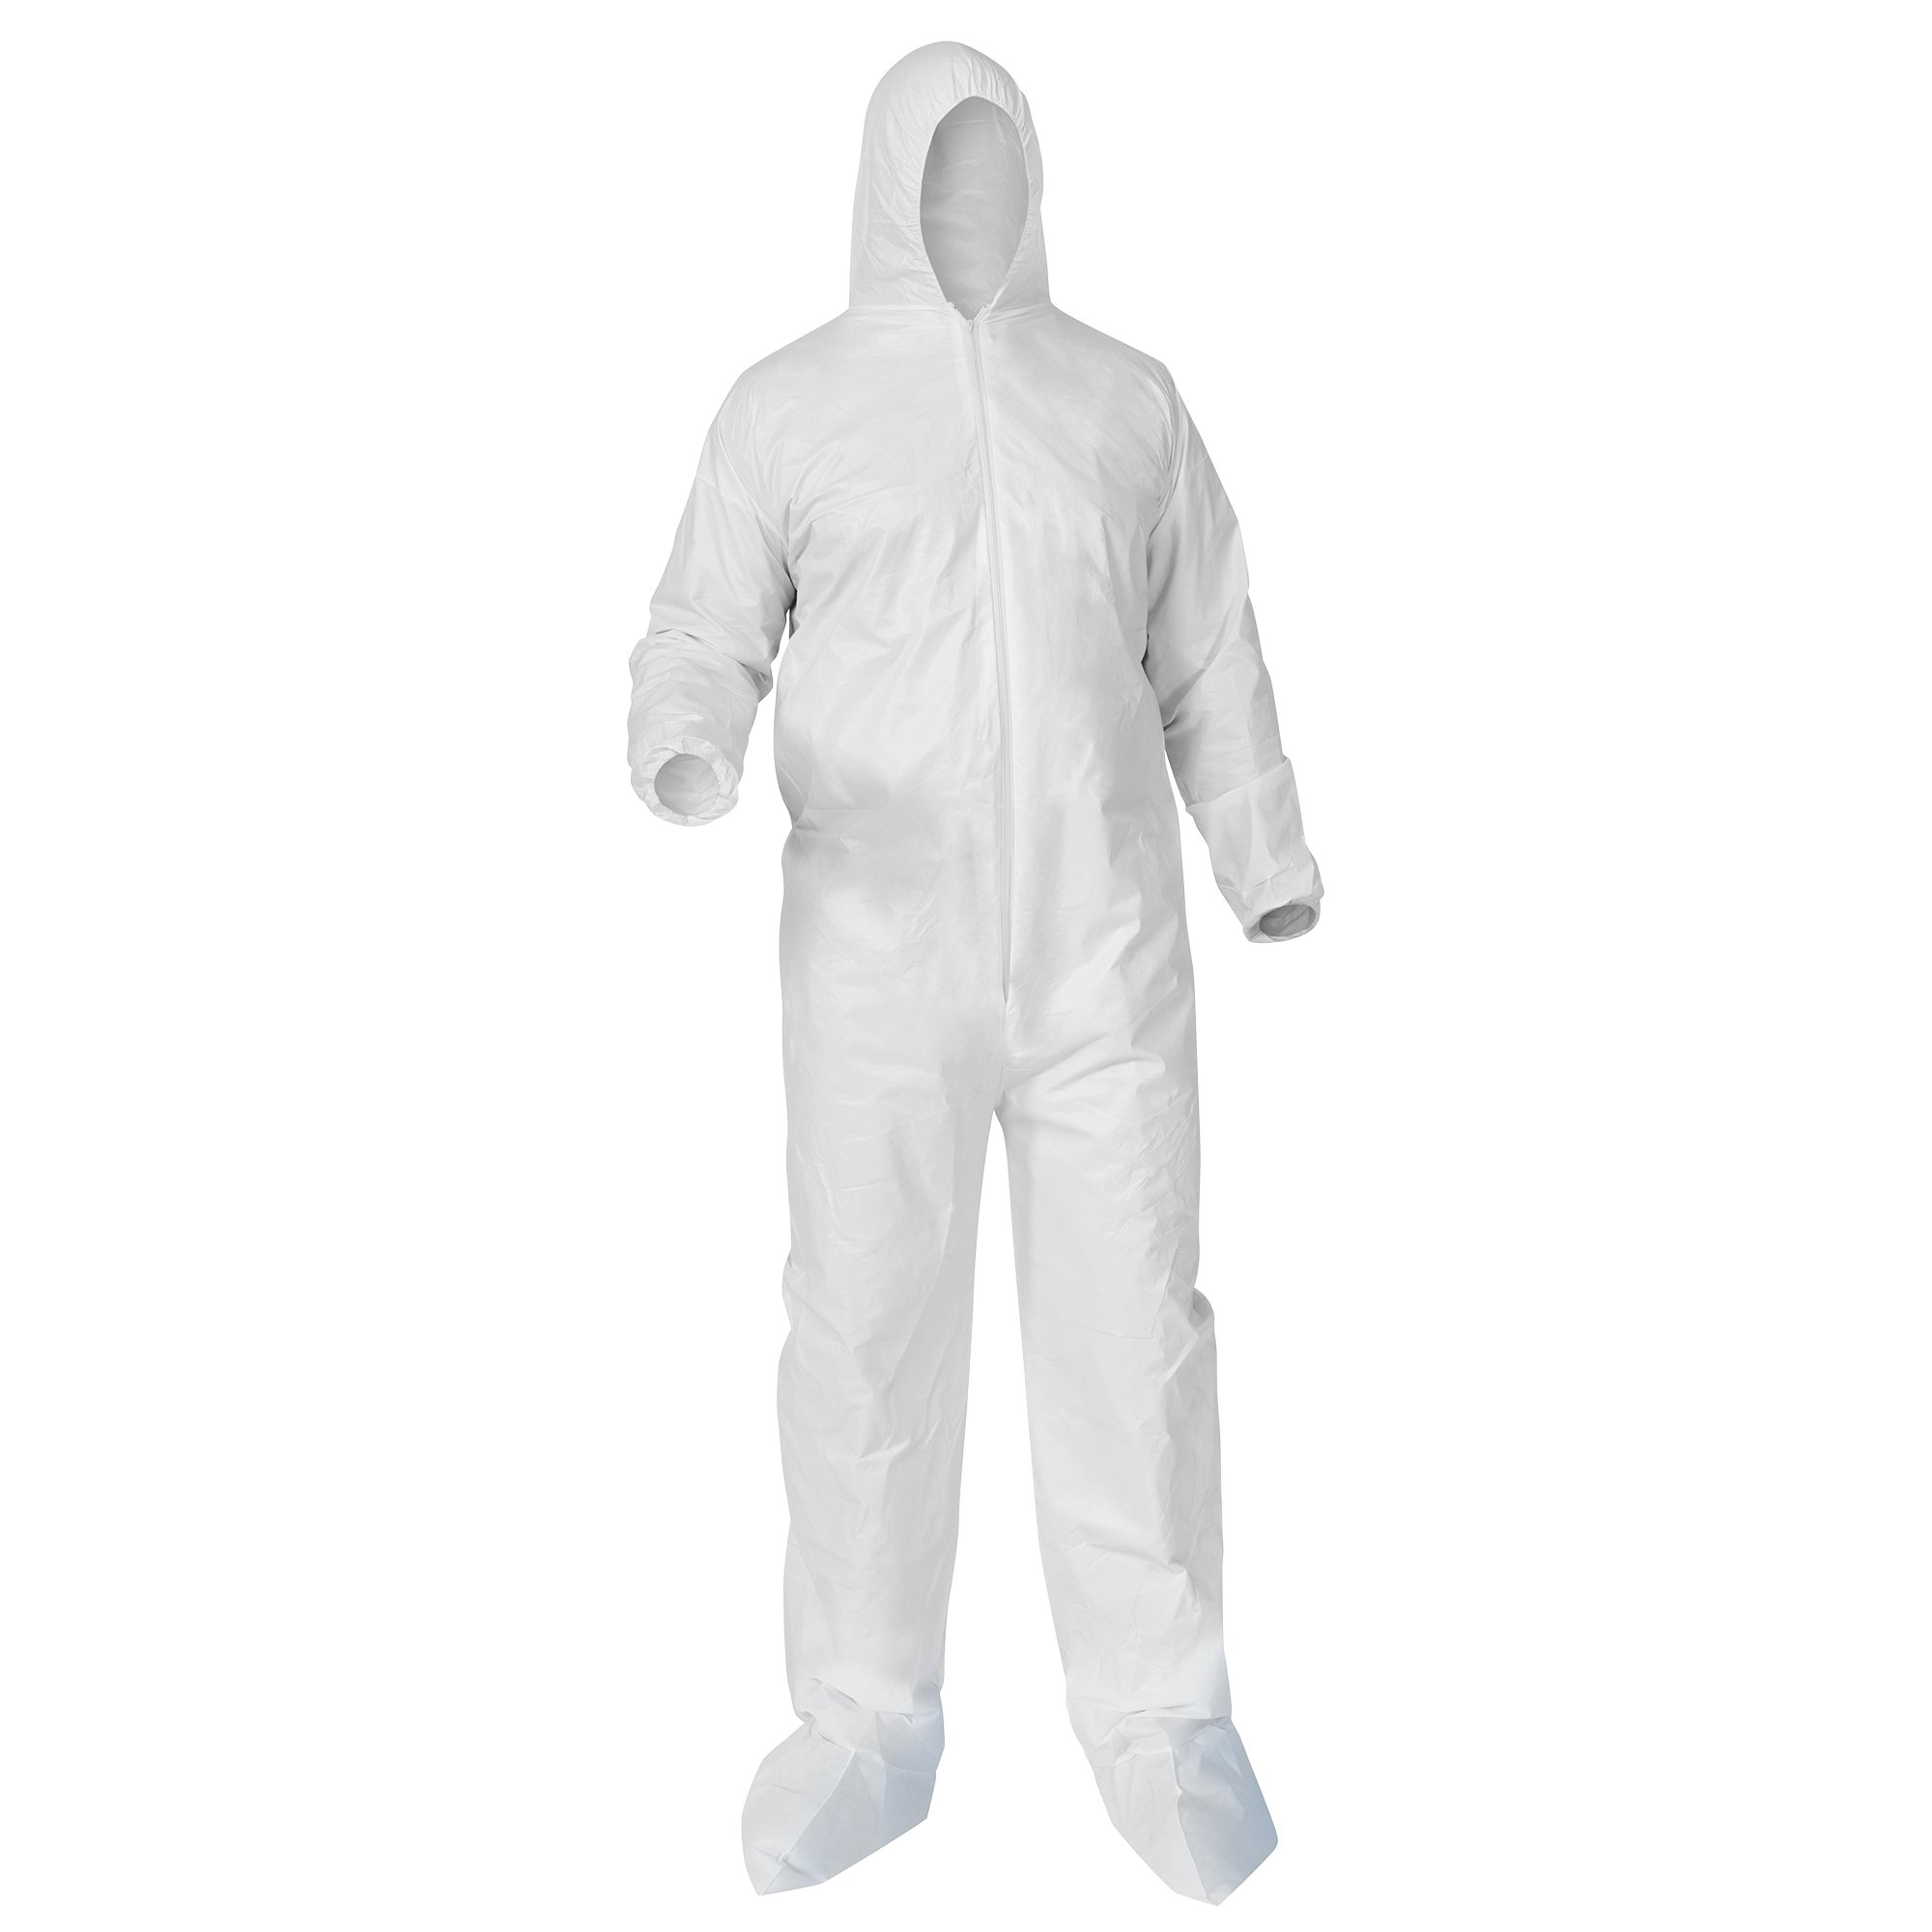 Kleenguard A35 Disposable Coveralls (38950), Liquid and Particle Protection, Zip Front, Elastic Wrists, Hood & Boots, White, 2XL, 25 Garments / Case